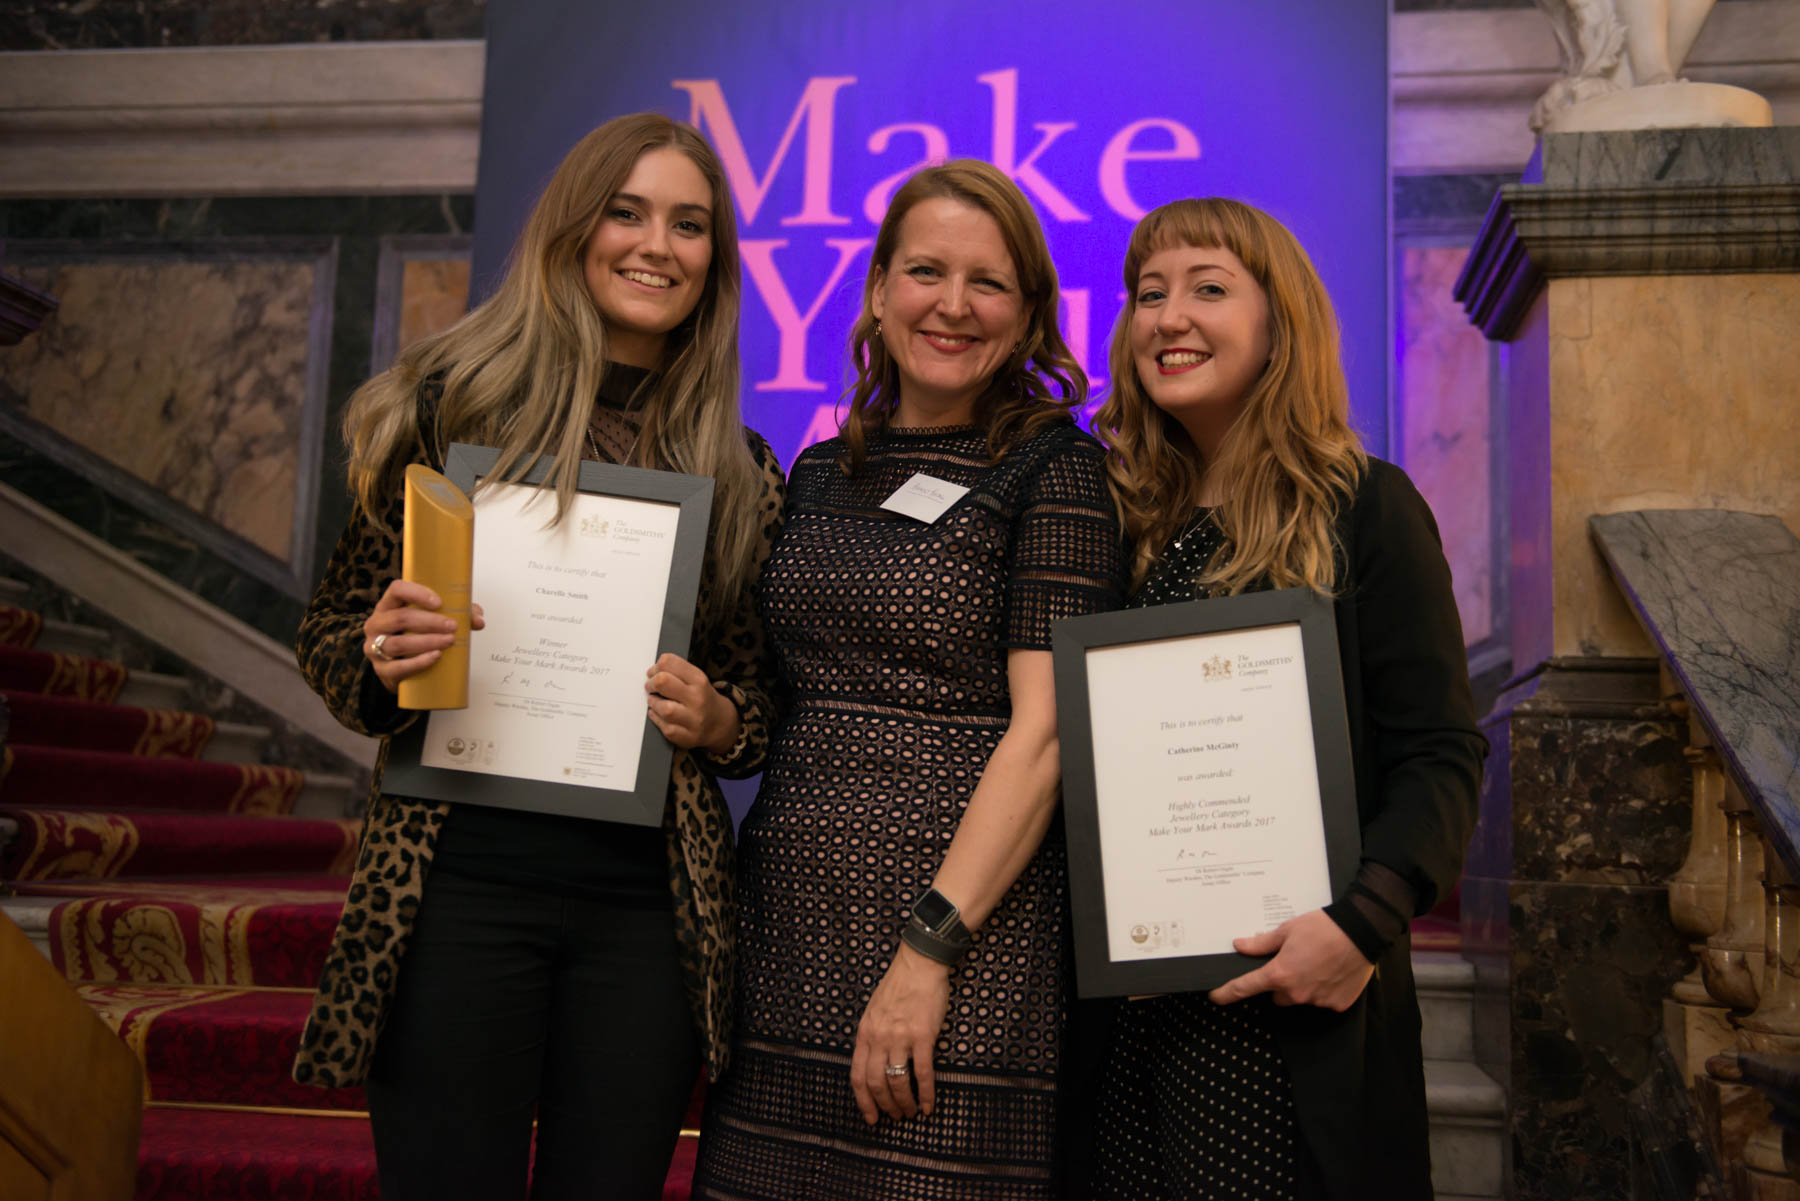 Charelle, Harriet Kelsall and Cat - winners in 2017